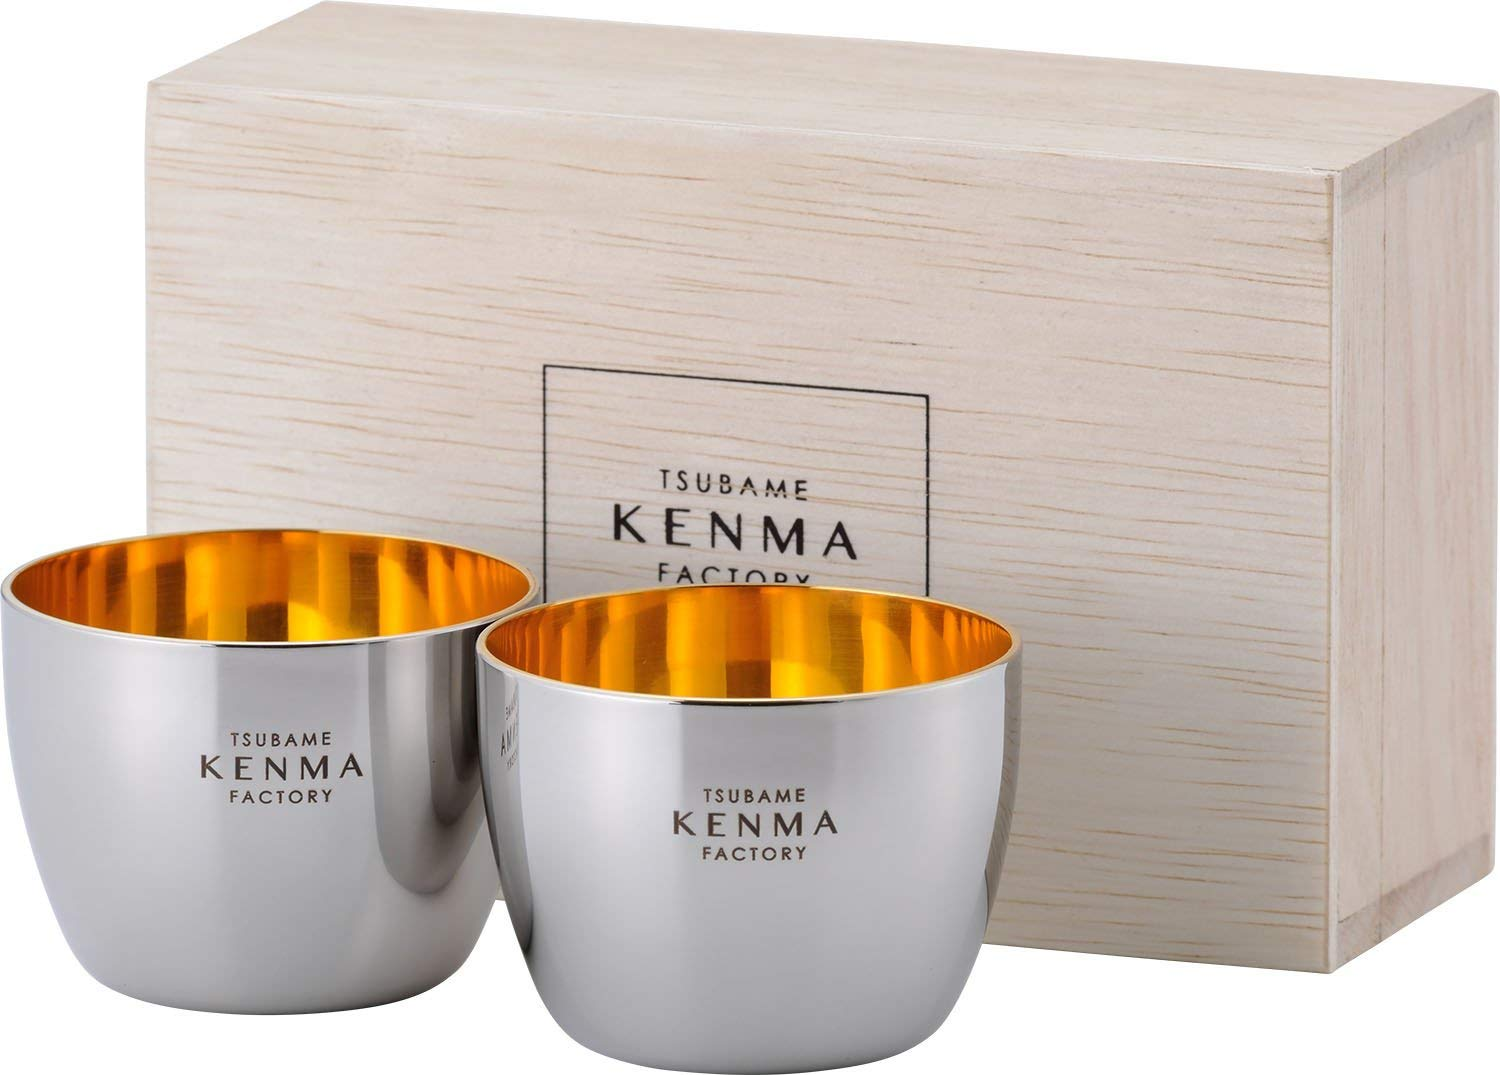 Wahei Freiz Japanese Stainless Sake Set (2 Piece 100ml) with Wooden Case Tsubasa Kenma Factory TM-9858